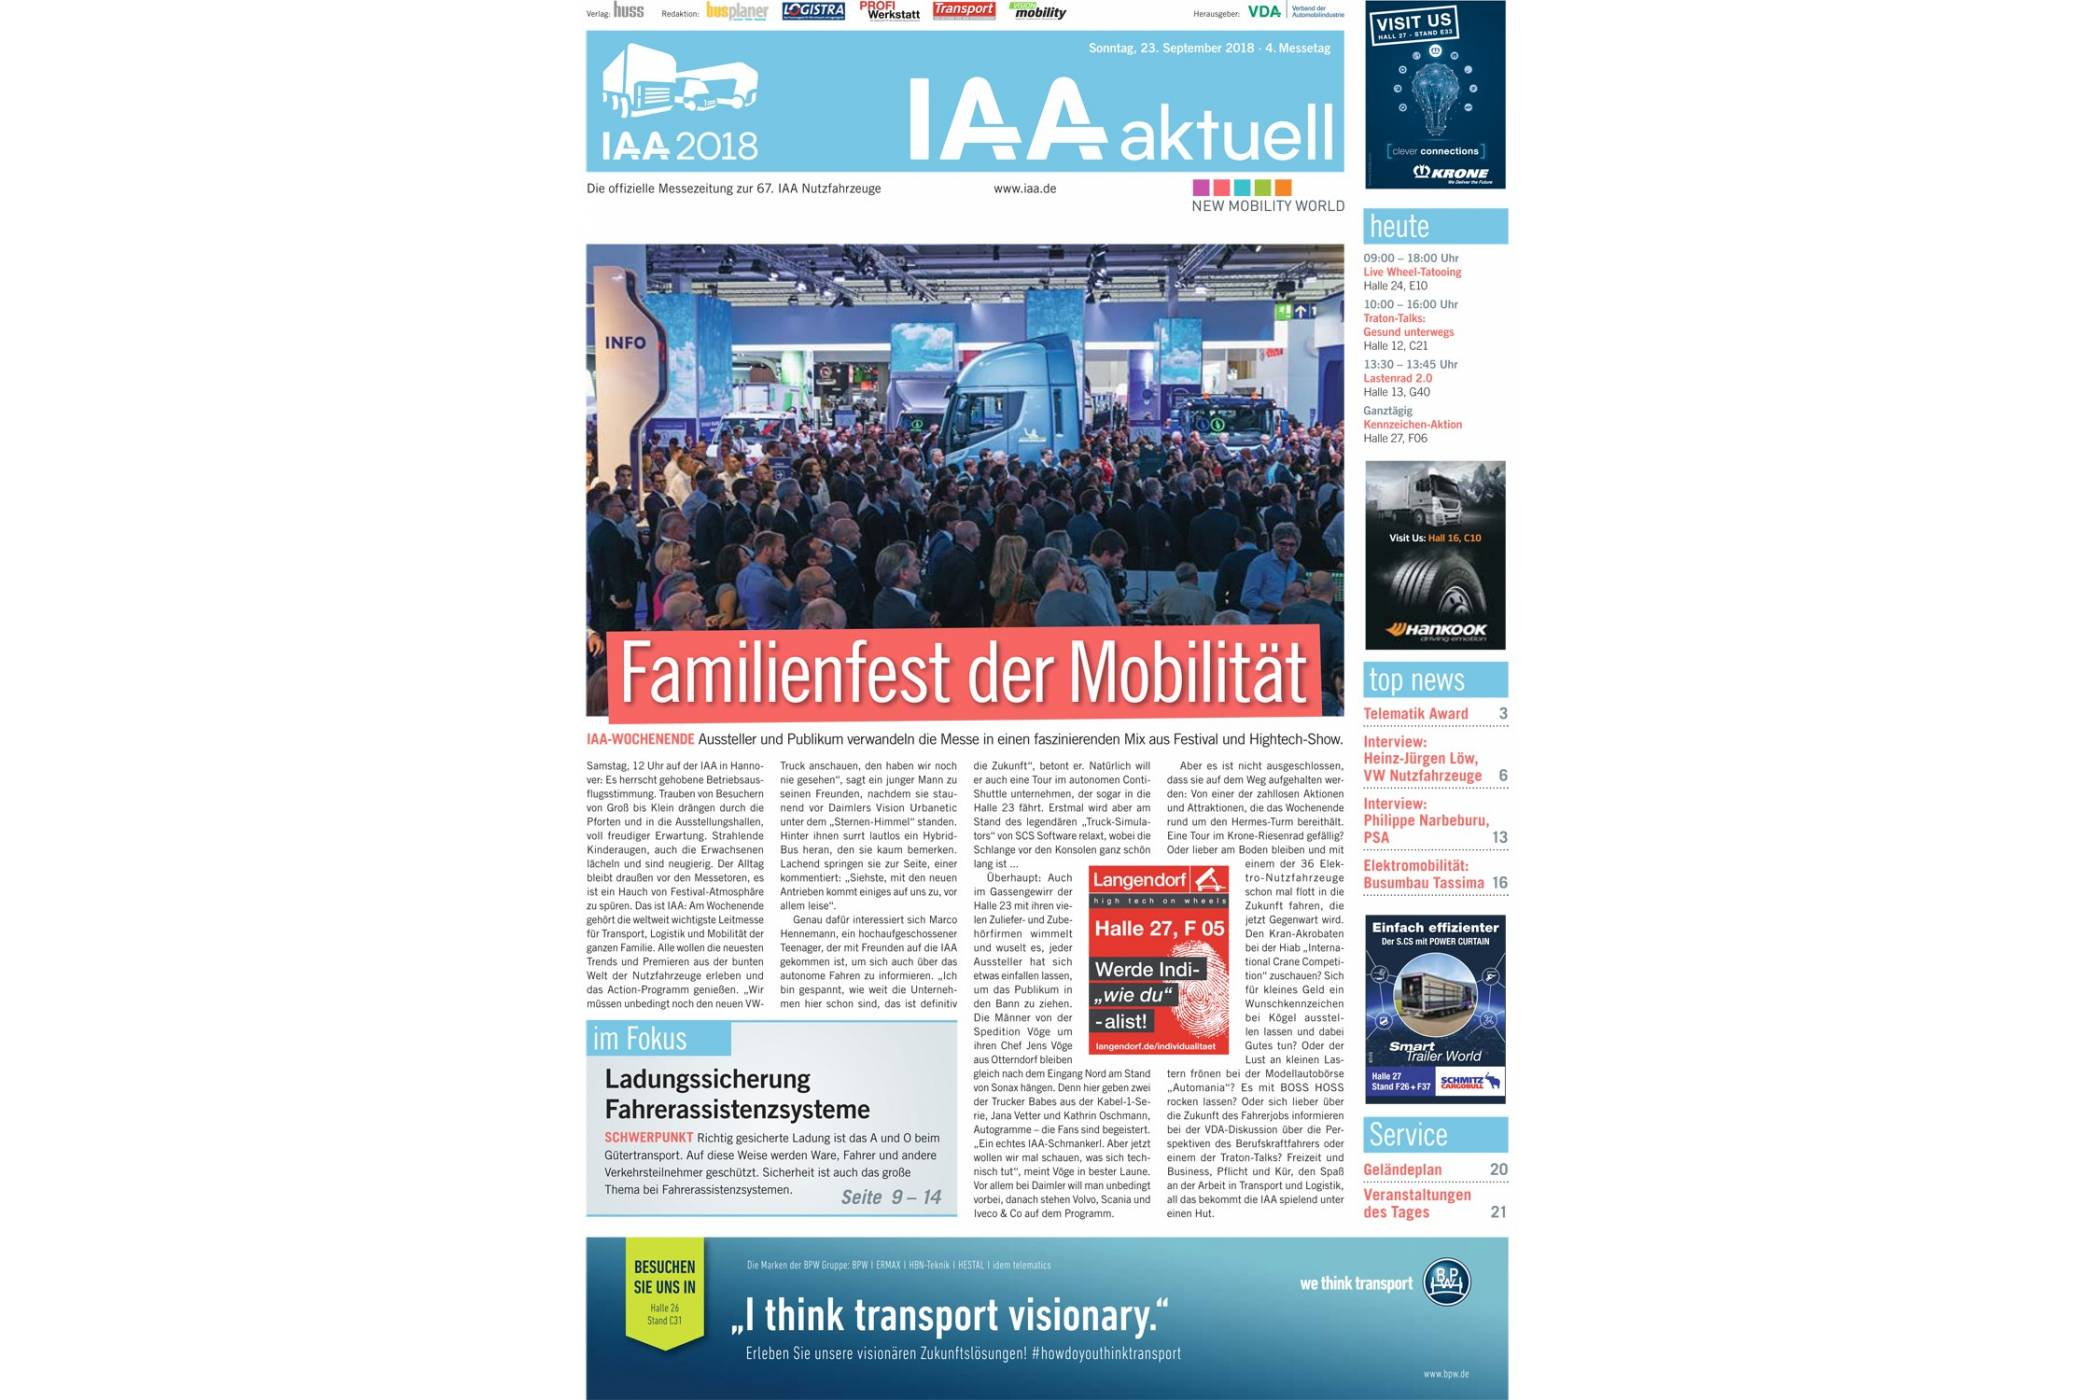 IAA aktuell 2018 - 23. September